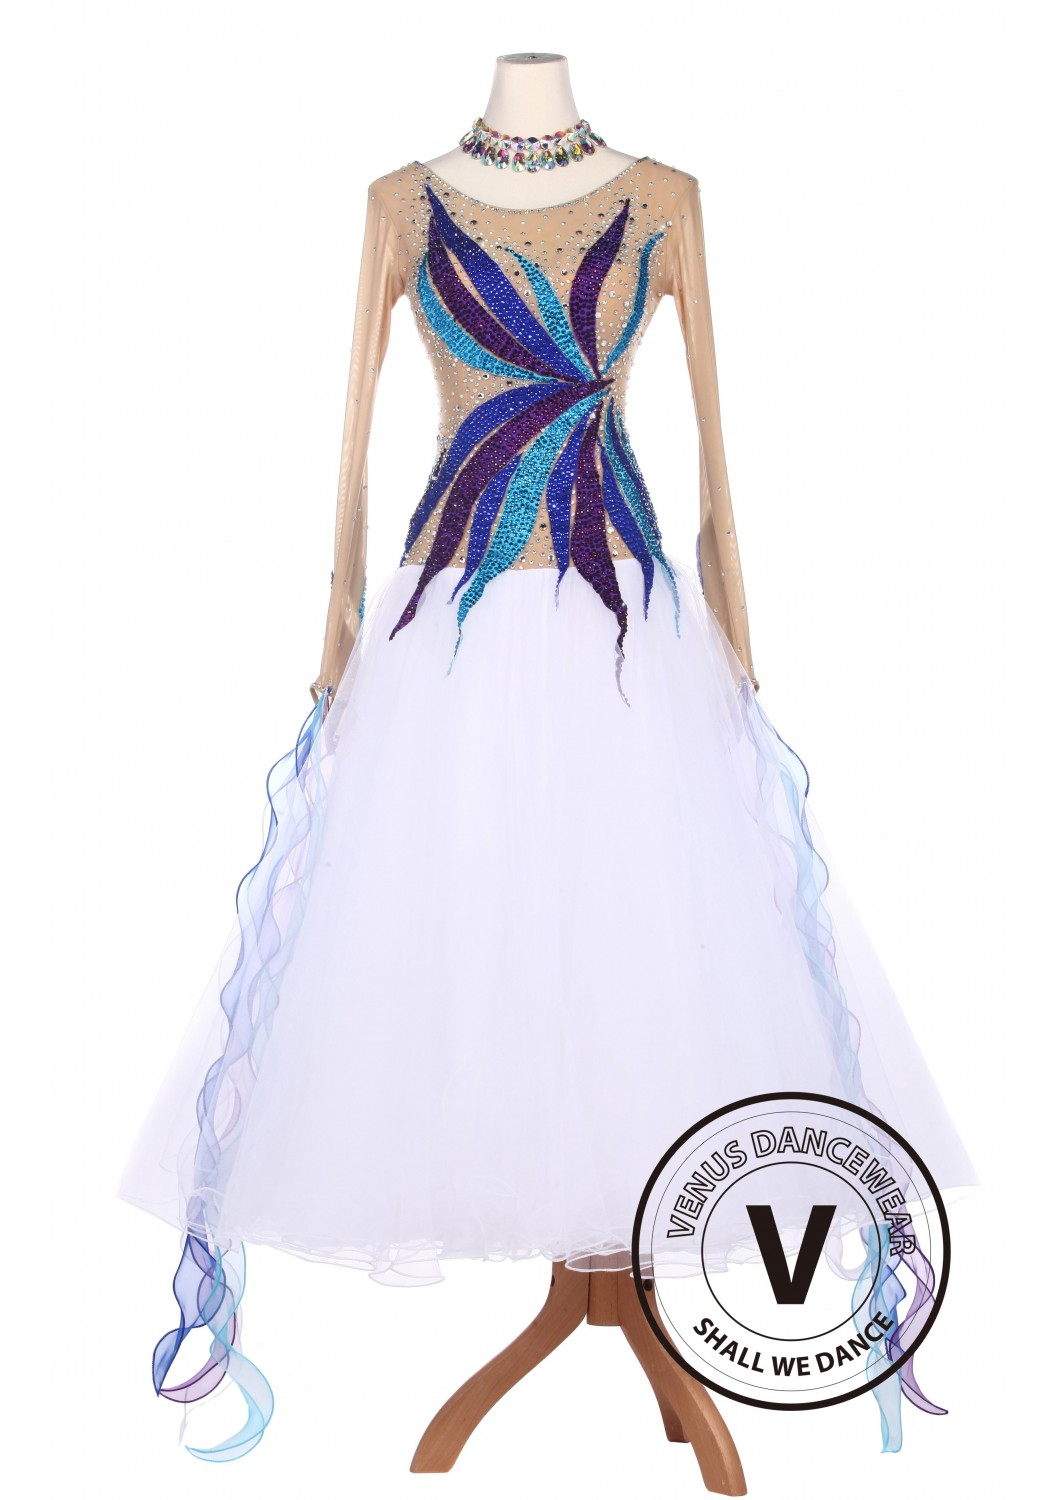 White Beautiful Standard Smooth Tango Waltz Competition Ballroom Dress